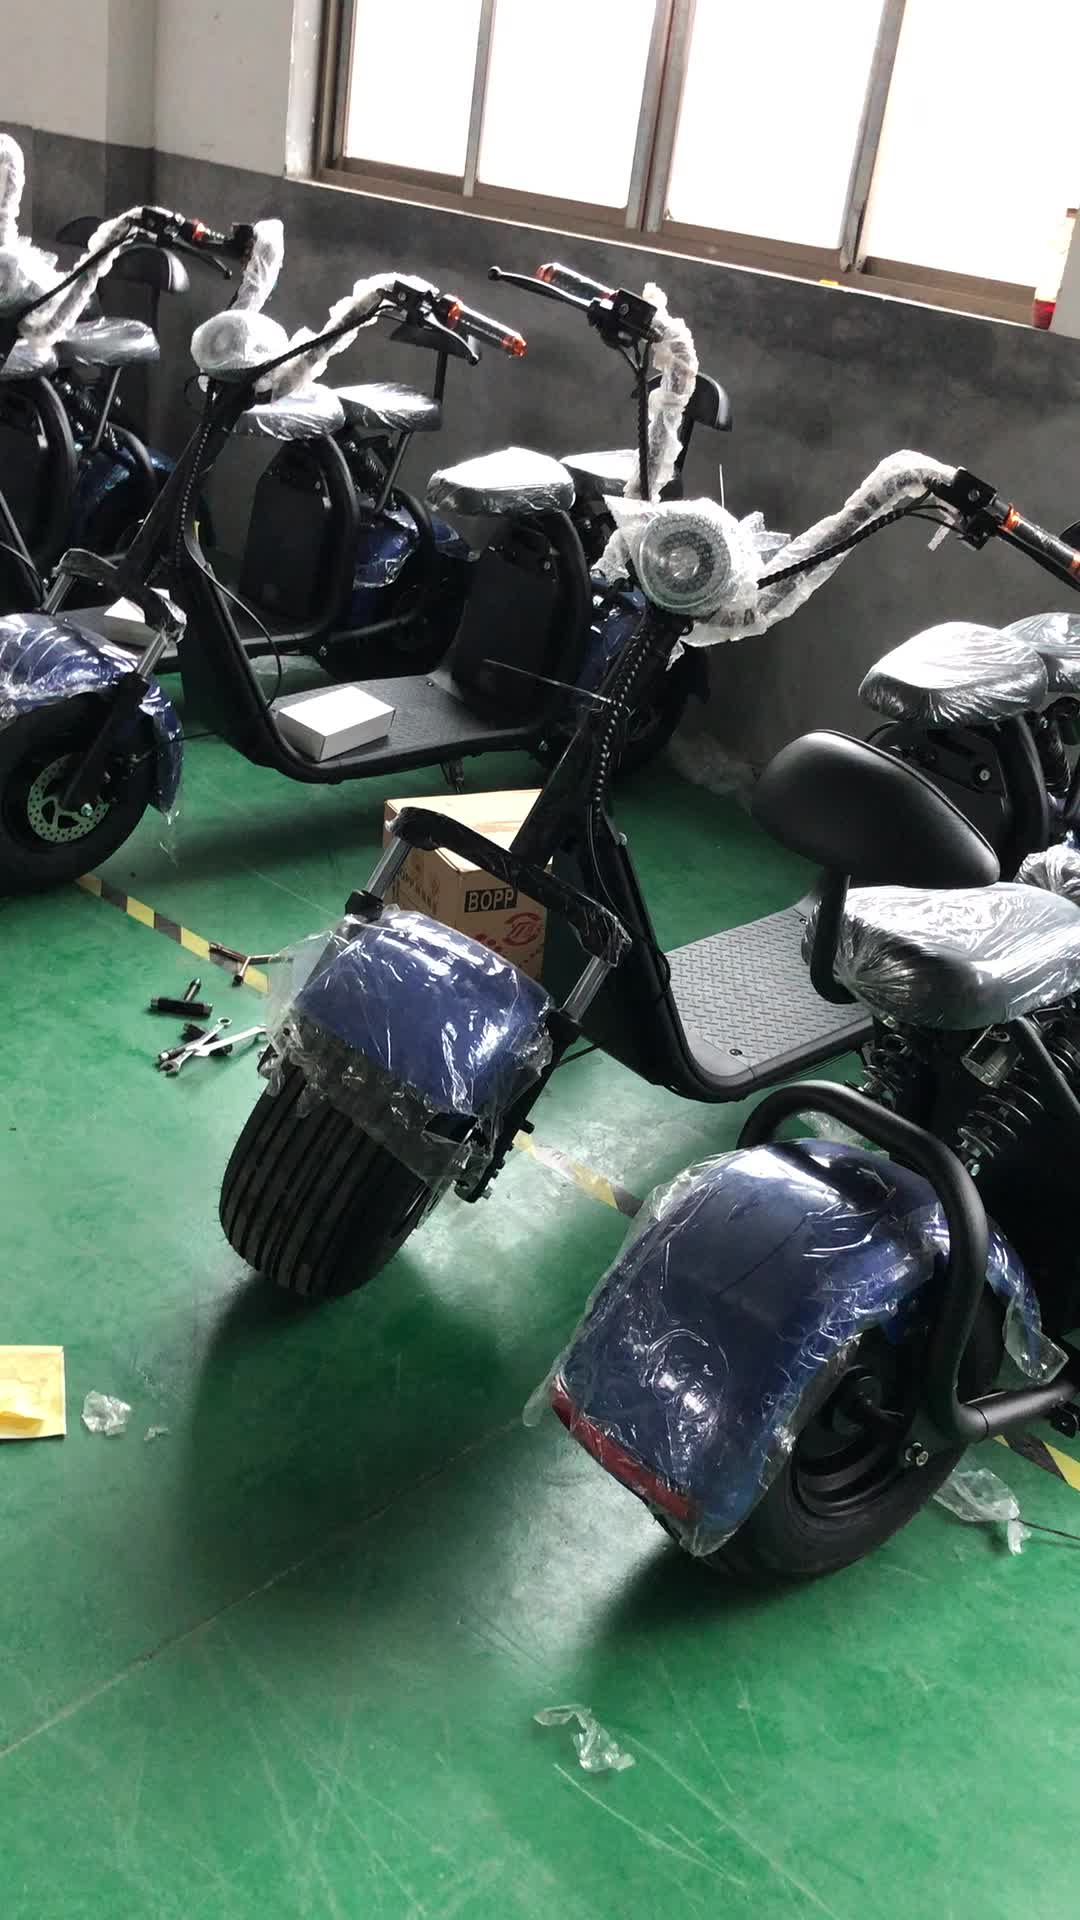 2017 electric scooter 800w citycoco Battery removable electrical scooter motor, adult electric motorcycle(C07)